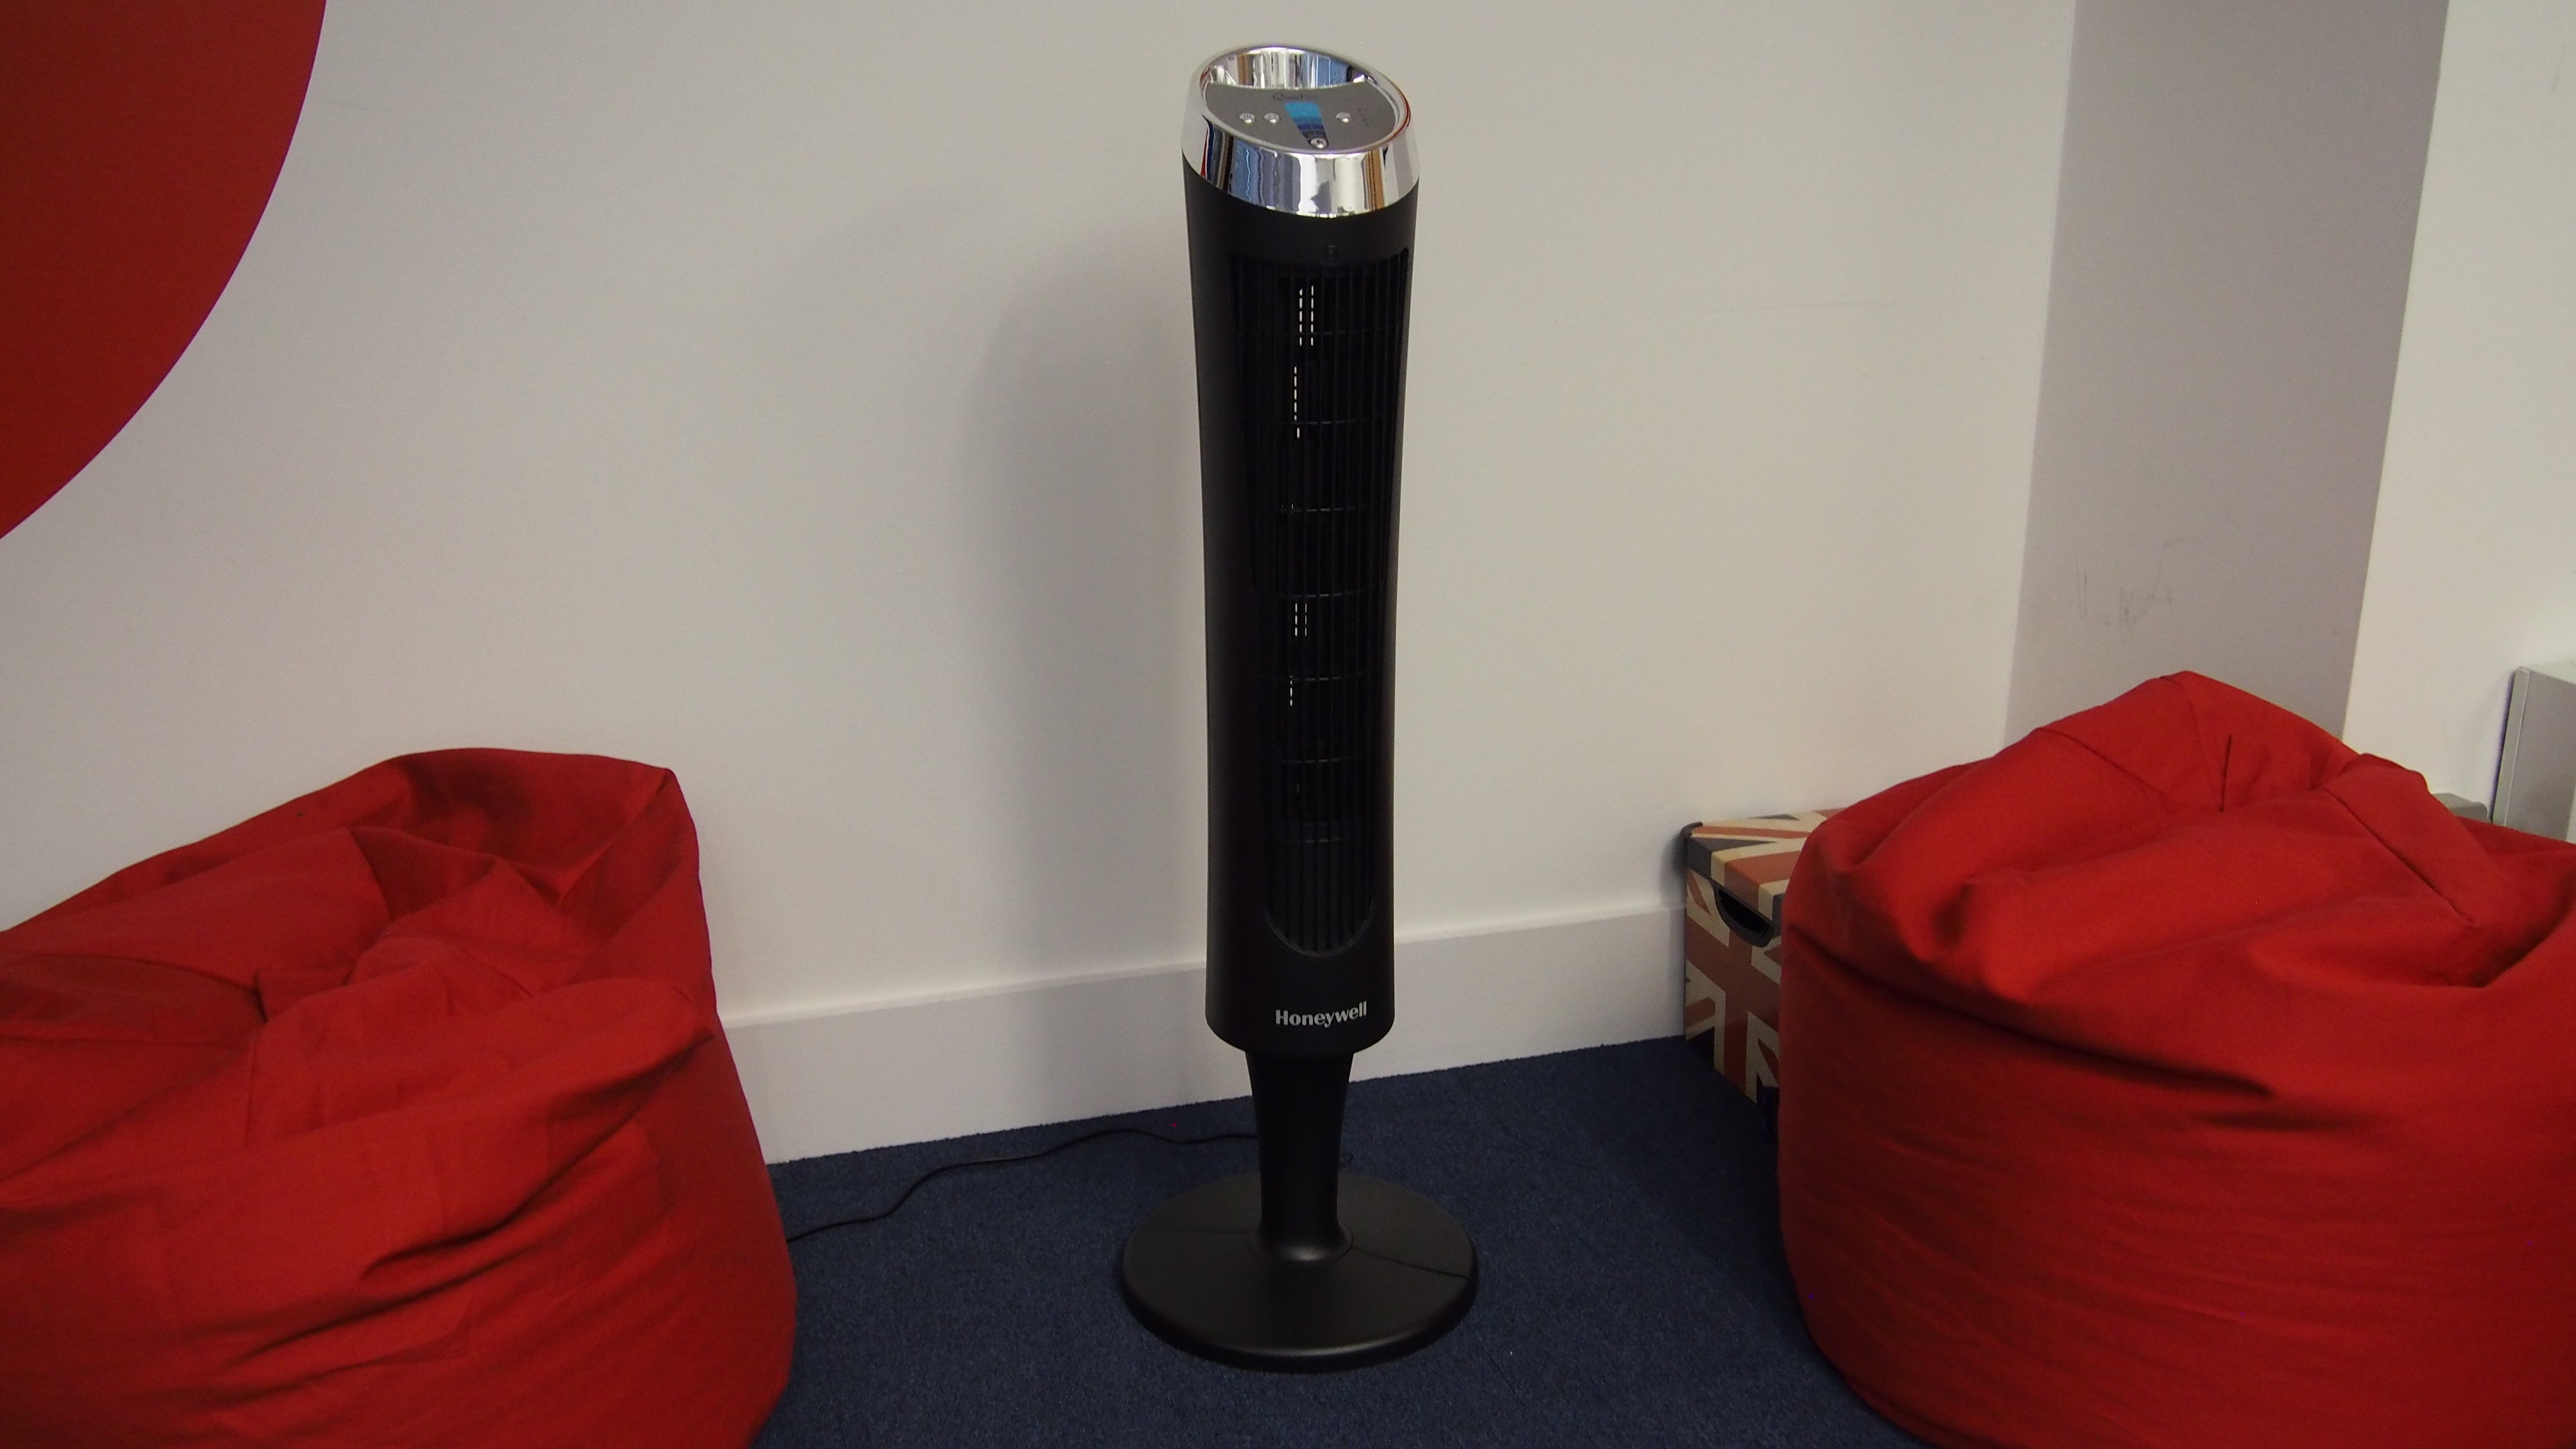 Honeywell Hy254e Quietset Tower Fan Review Lives Up To